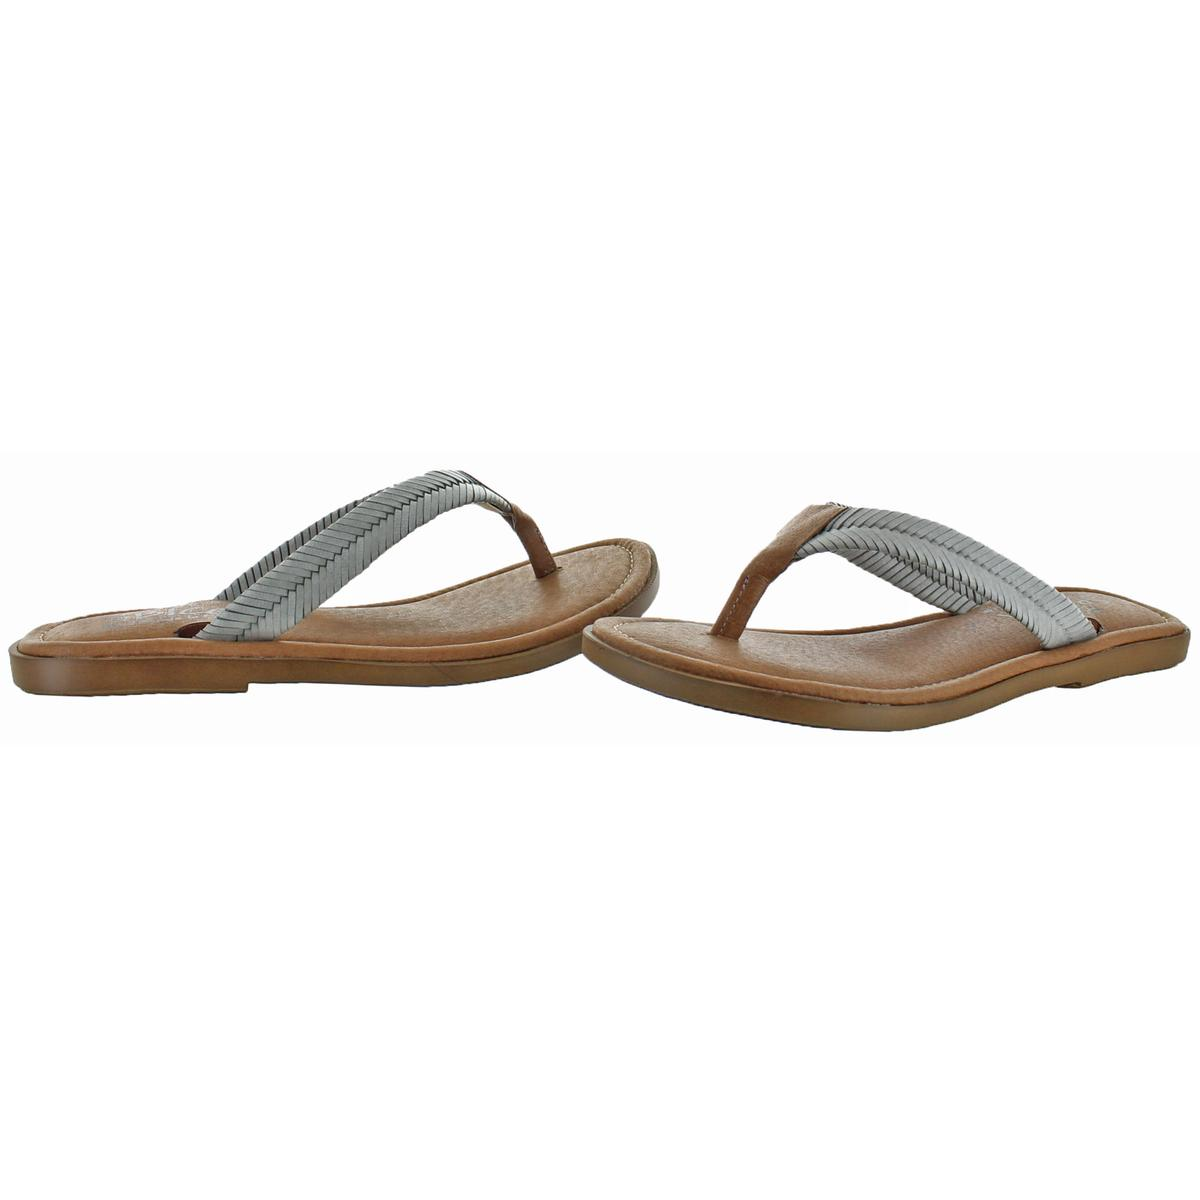 Sbicca-Elonara-Women-039-s-Leather-Slip-On-Chevron-Braided-Thong-Sandals-Shoes thumbnail 7